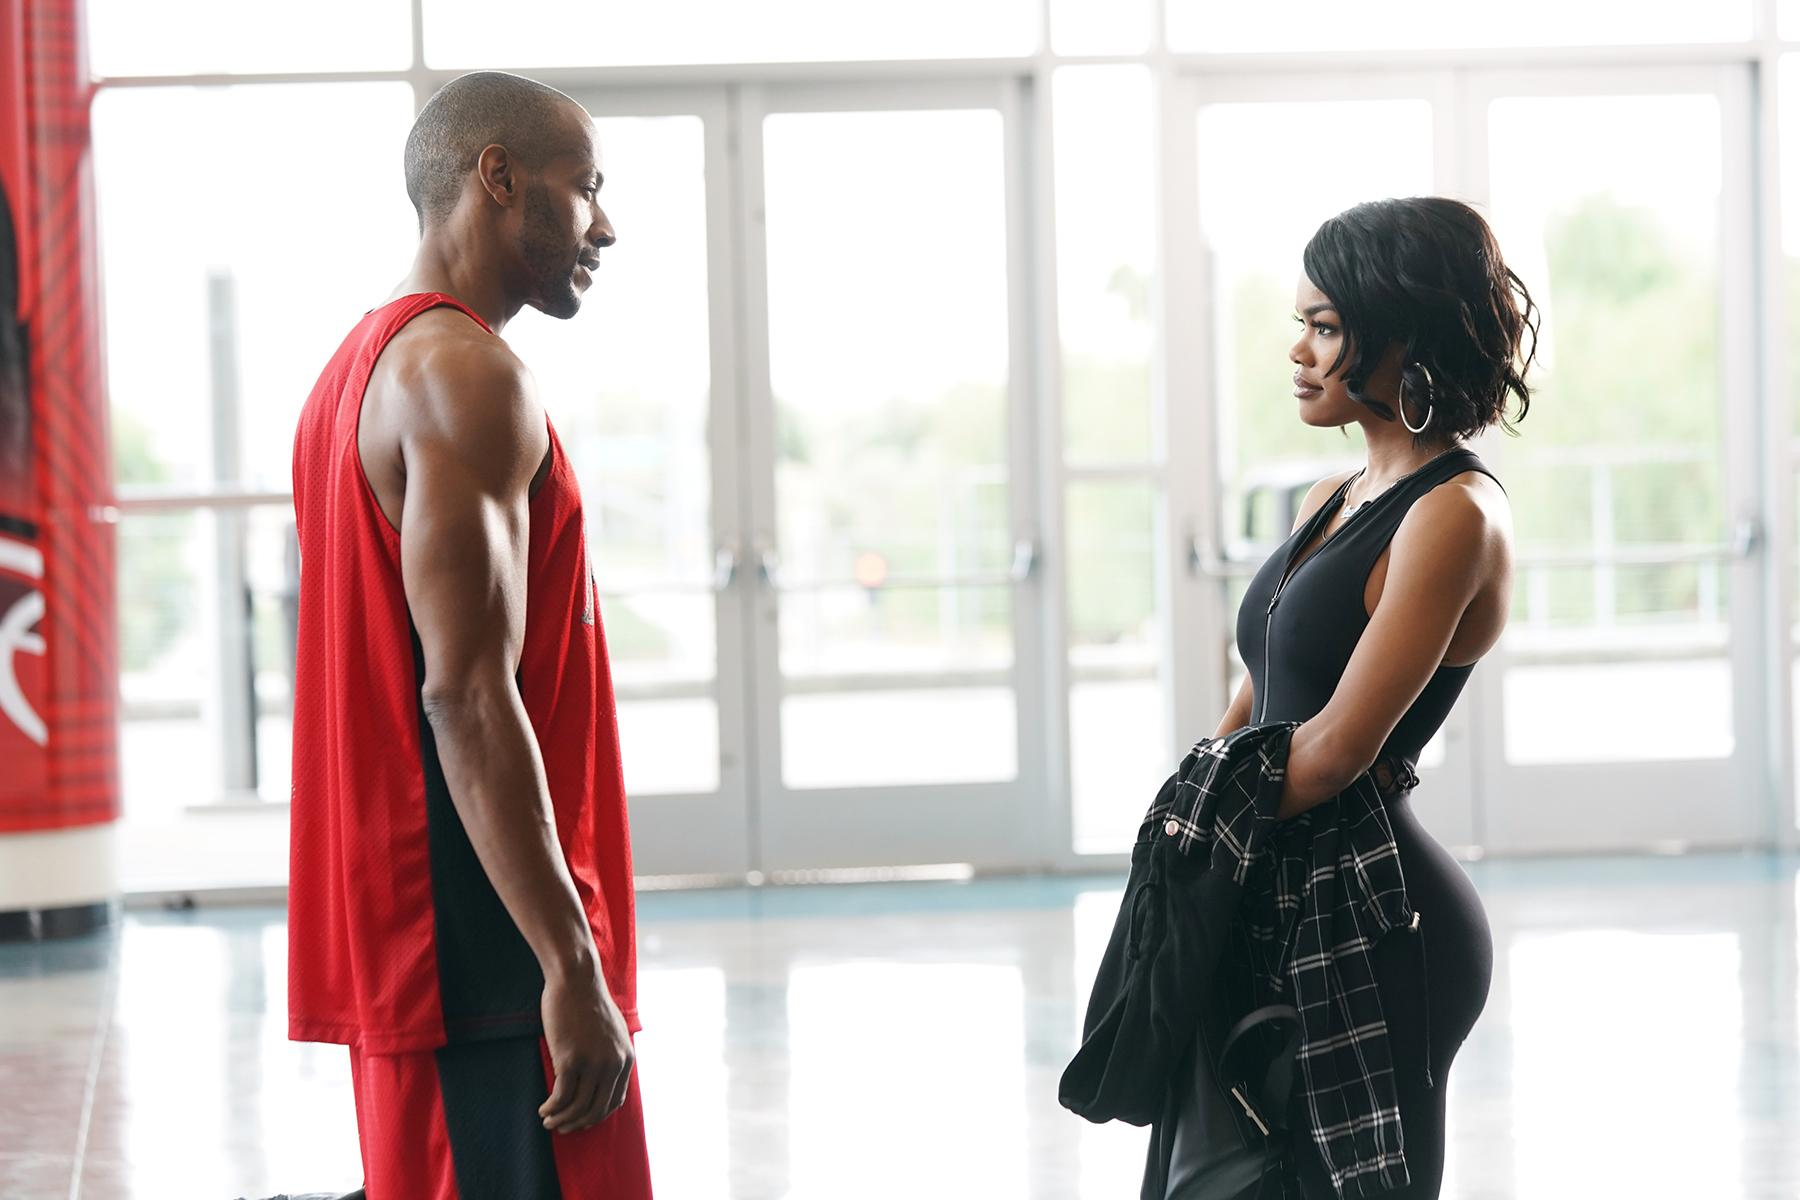 Hit The Floor Season 4 Spoilers Episode 4 Synopsis And Trailer